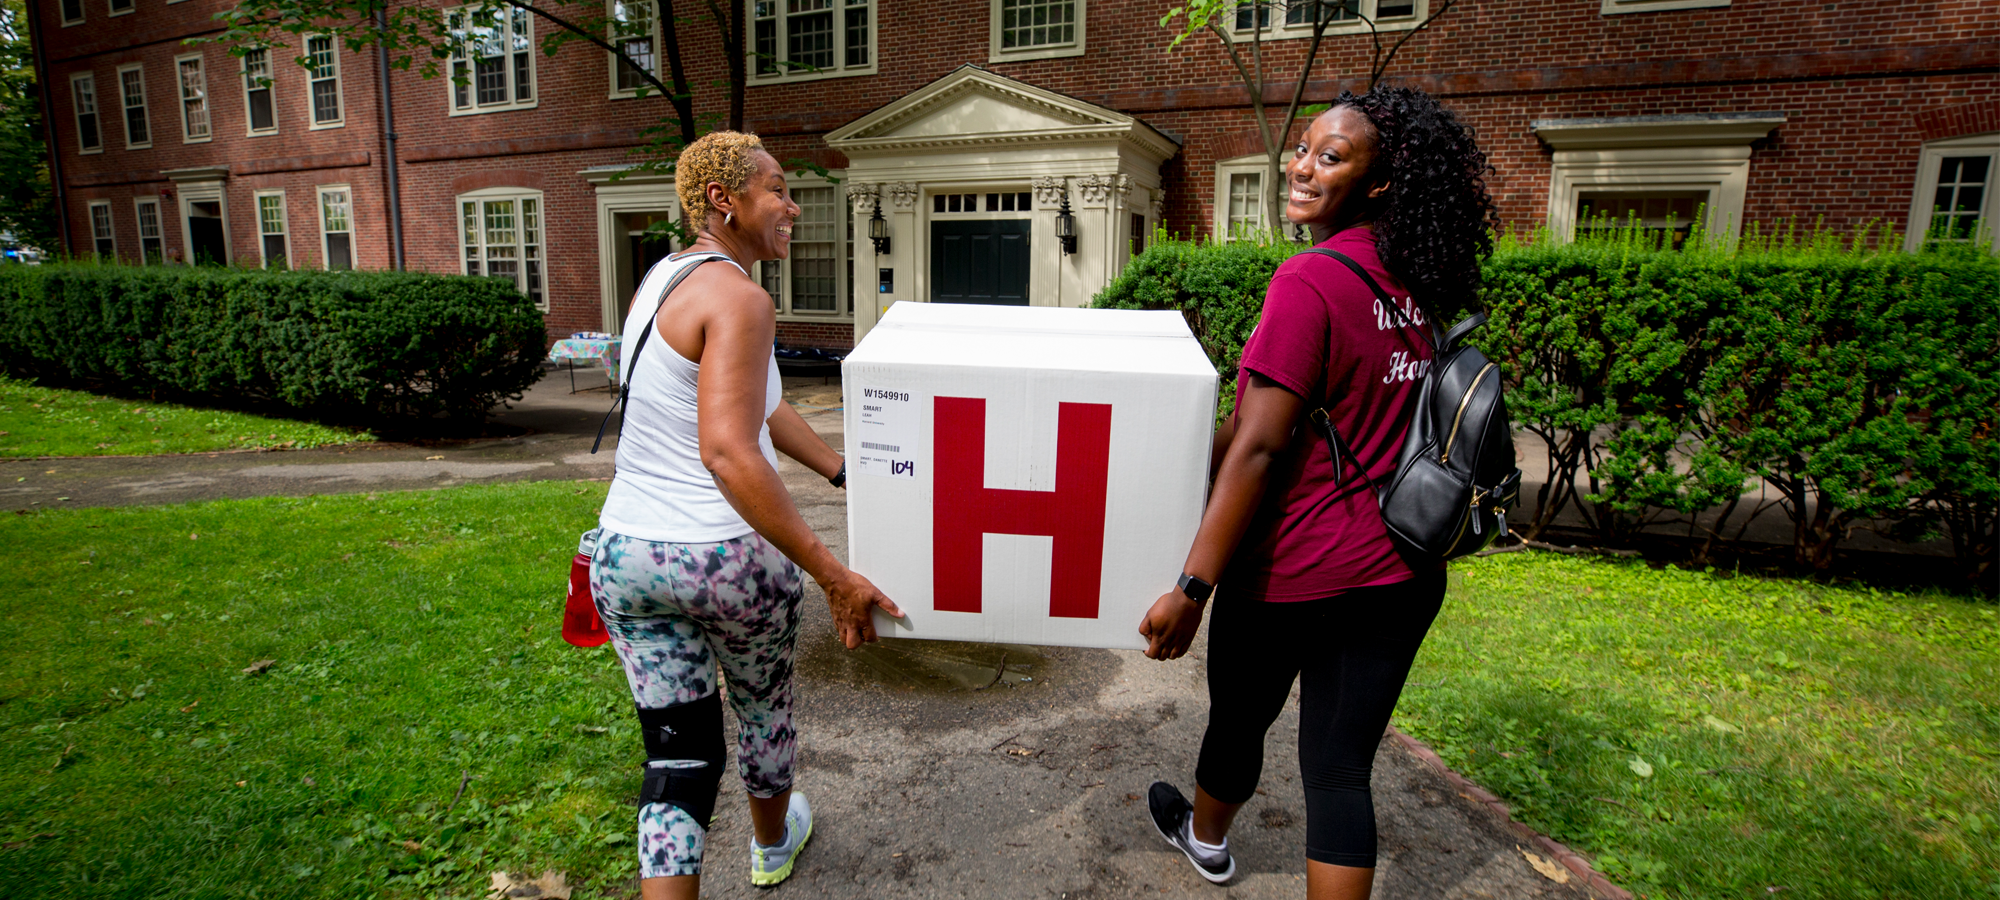 Leah Smart, (on right) has help from her Mom, Dee Smart to move into Straus Hall